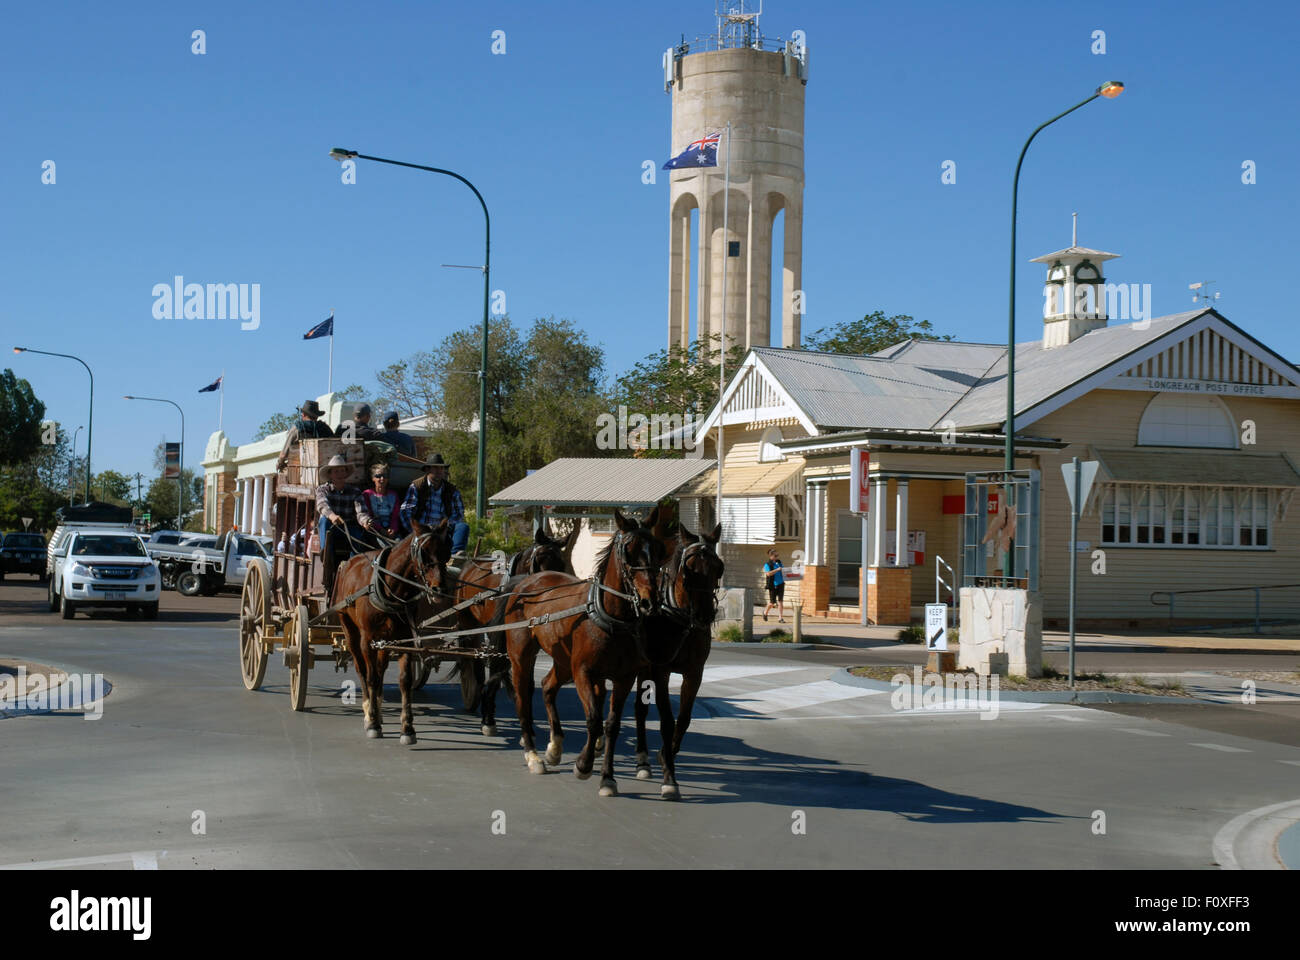 Tourists on a horse drawn carriage, stage coach, Longreach, Queensland Outback, Australia Stock Photo